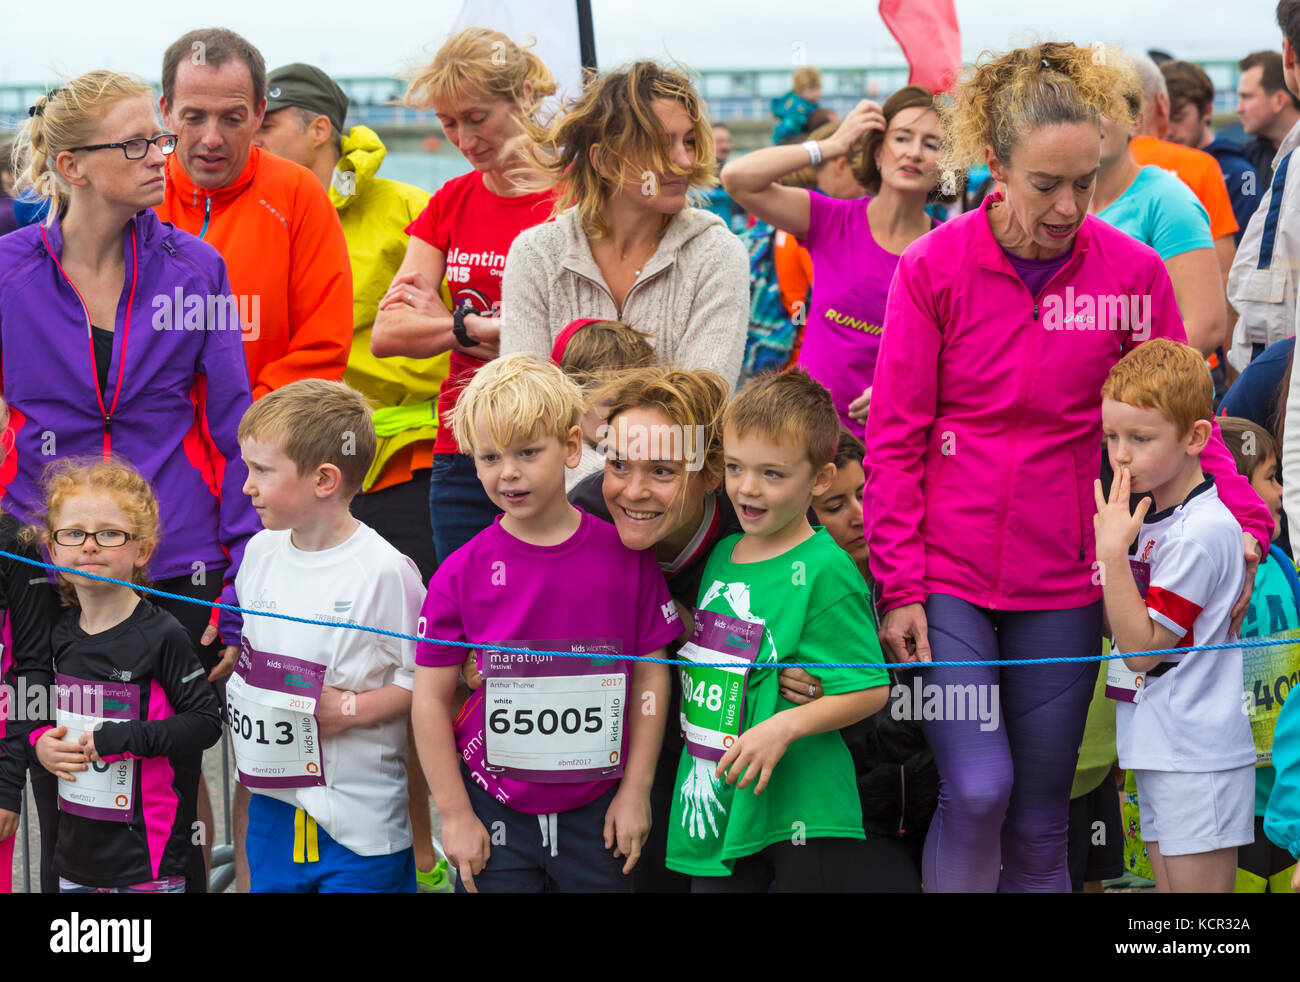 Bournemouth, Dorset, UK. 7th Oct, 2017. The first day of the Bournemouth Marathon Festival gets underway with the - Stock Image